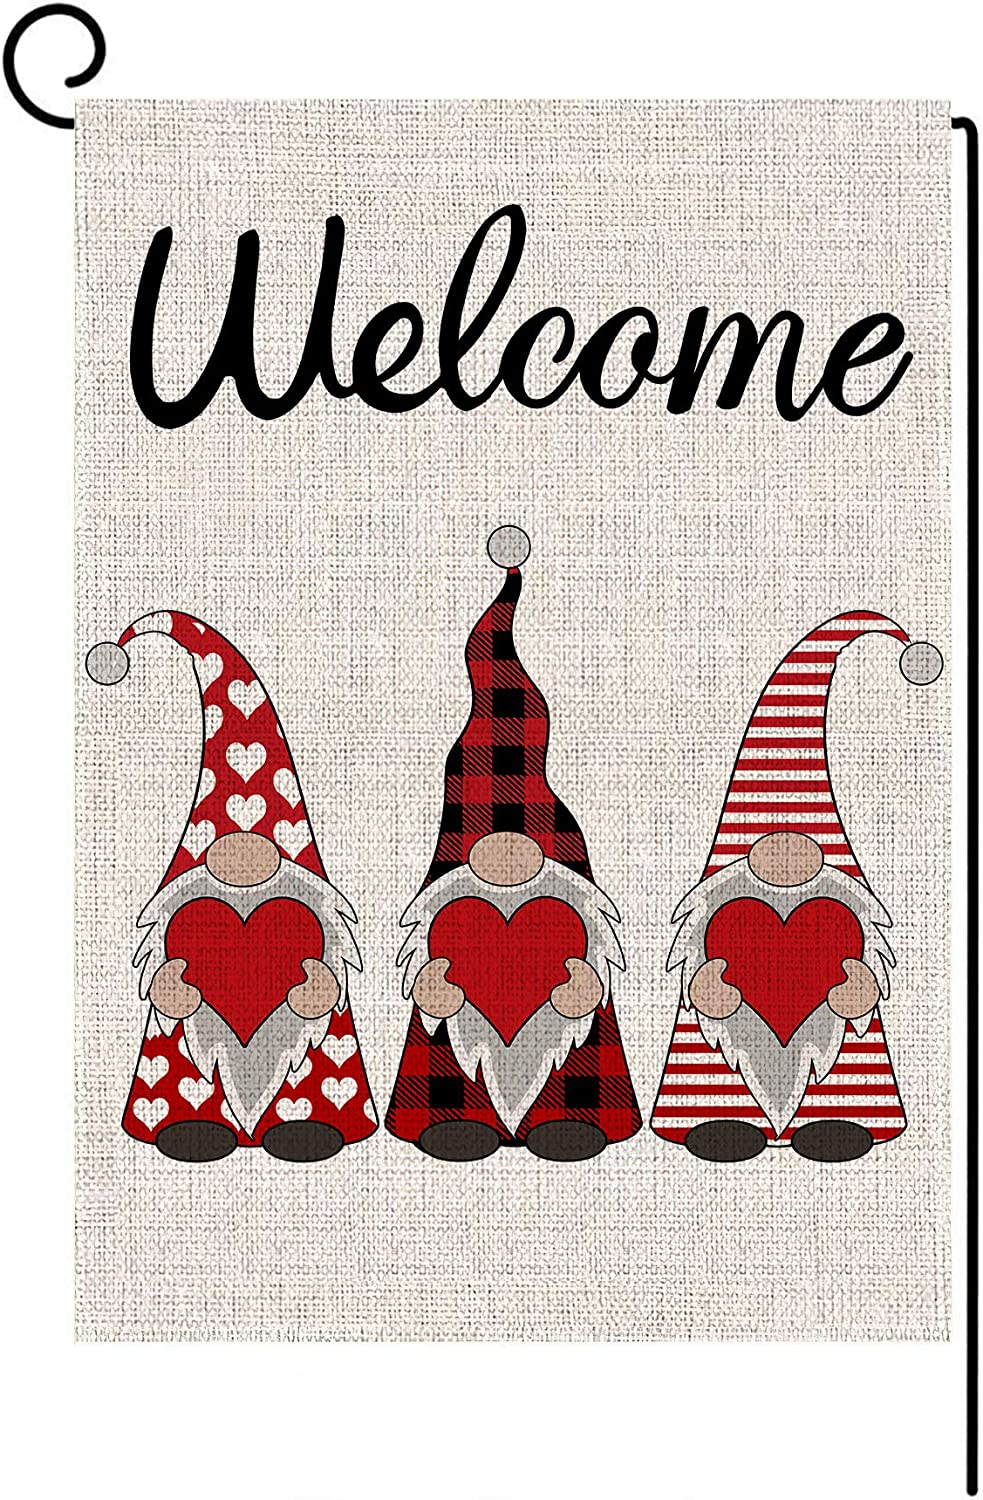 Welcome Valentines Day Garden Flag Vertical Double Sided Buffalo Plaid Gnome Love Heart Spring Garden Flag, Valentine's Day Holiday Anniversary Wedding Yard Outdoor Decoration 12.5 x 18 Inch